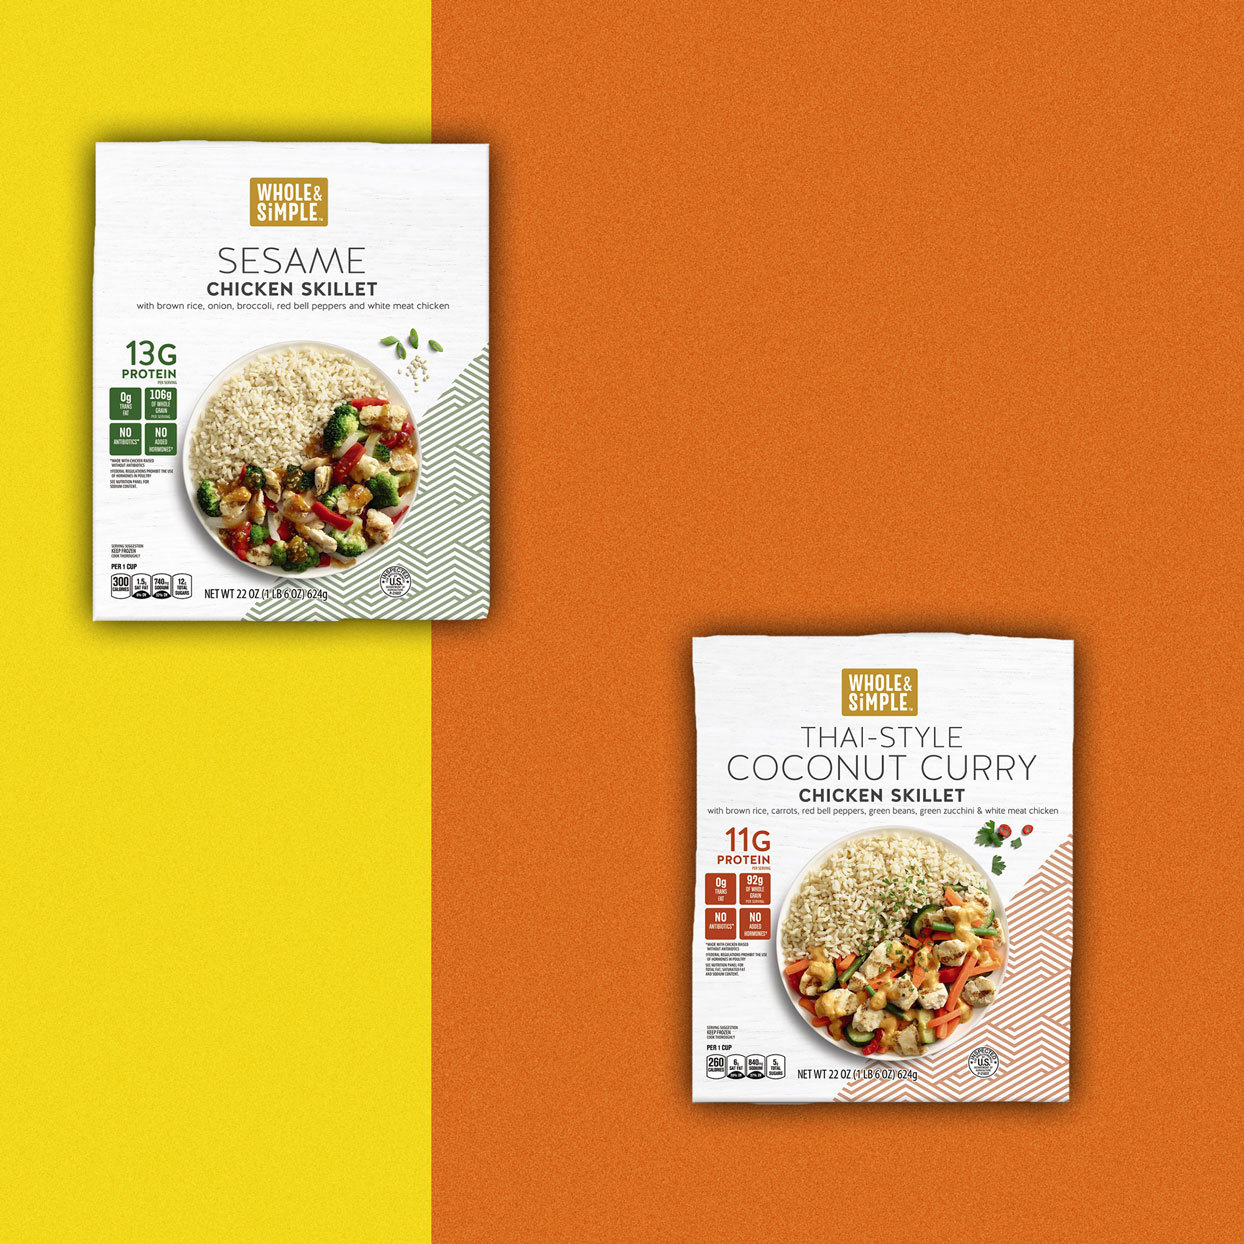 packaged Sesame Chicken Skillet and Thai-Style Coconut Curry Chicken Skillet